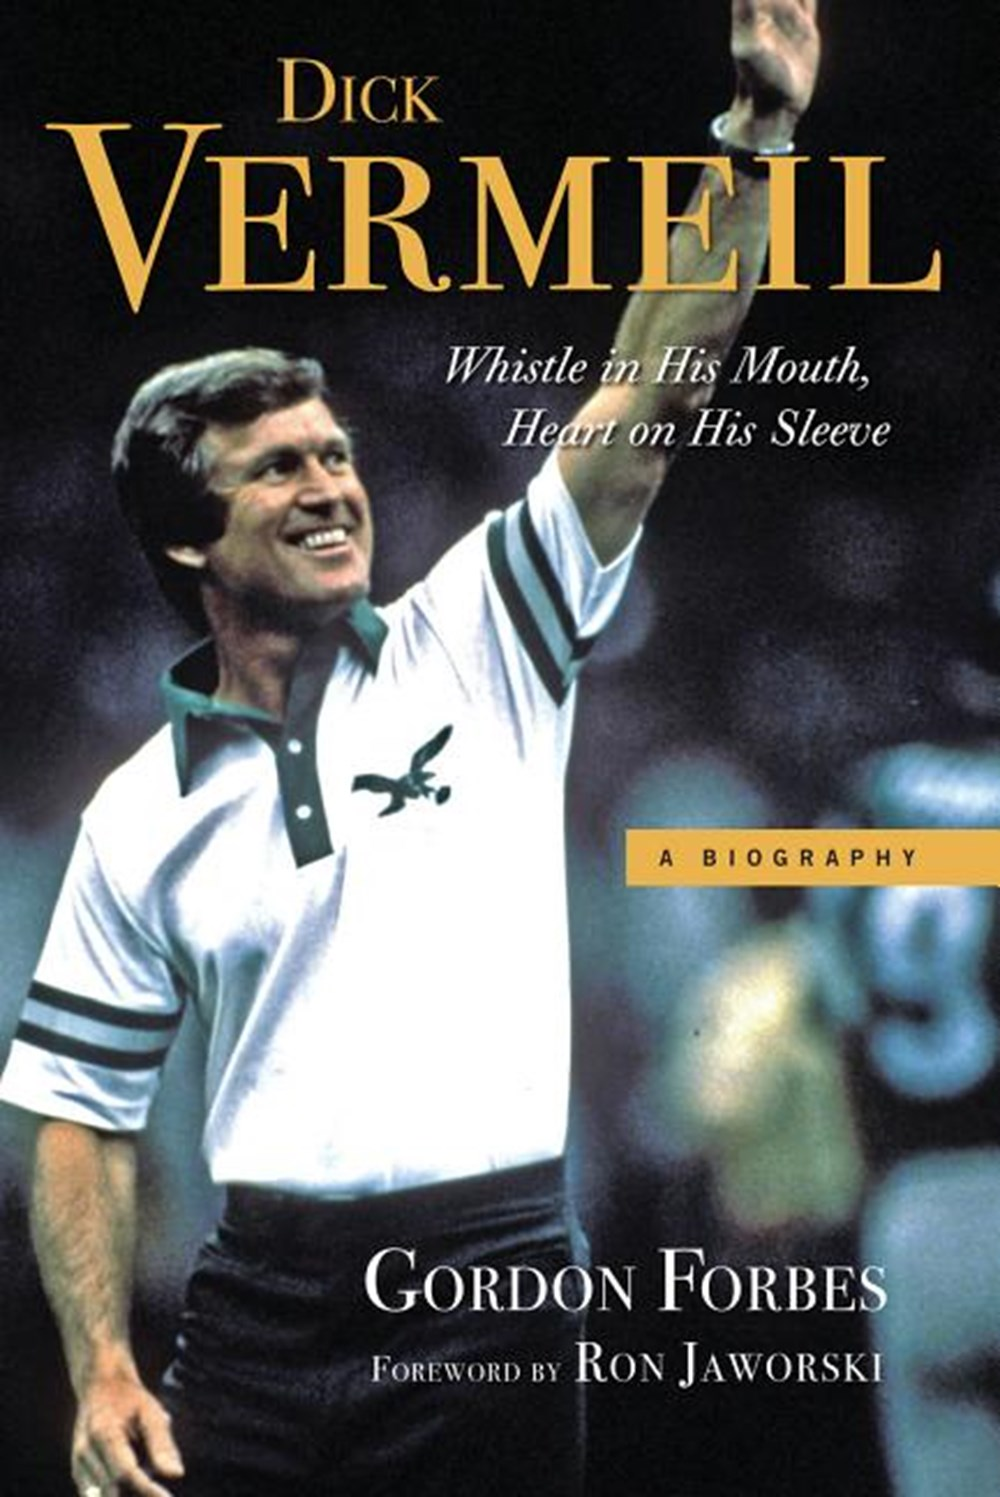 Dick Vermeil Whistle in His Mouth, Heart on His Sleeve